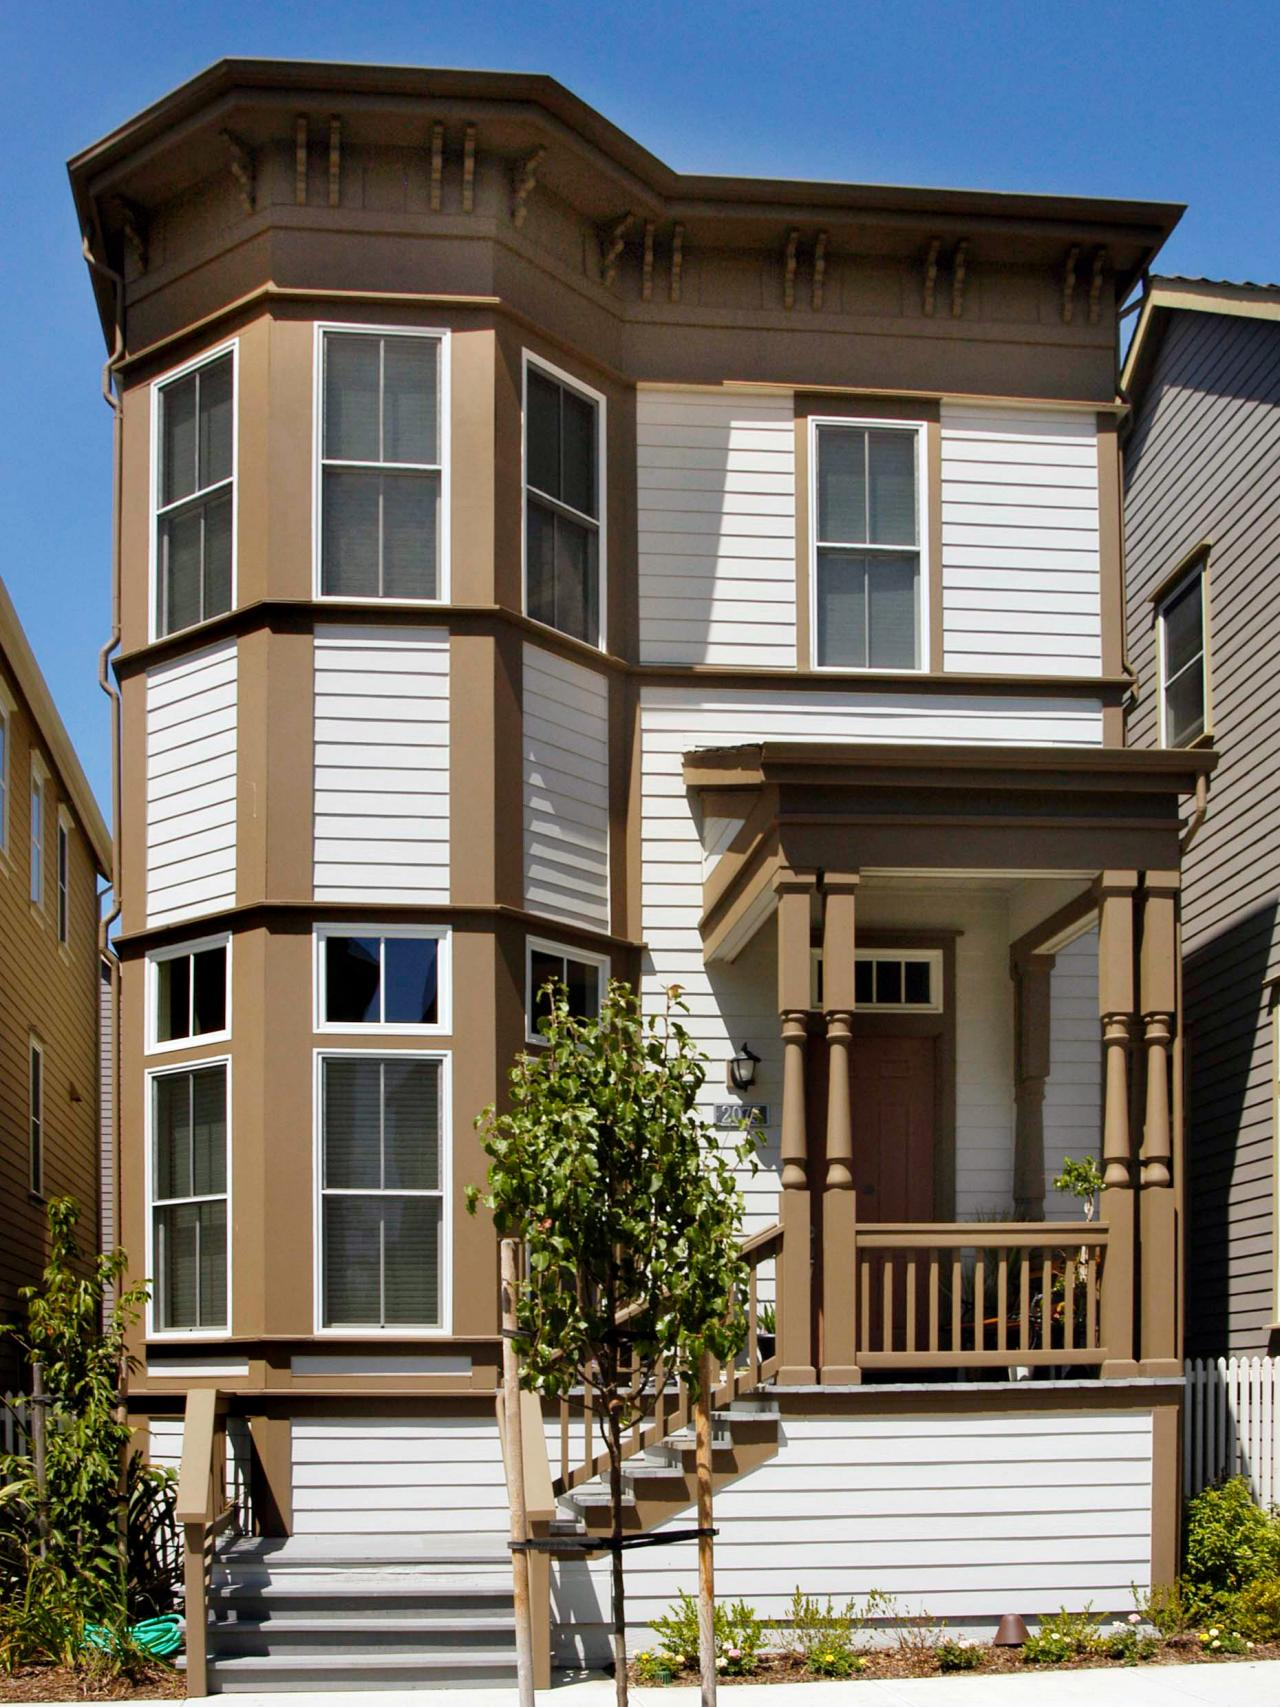 Homes With Bay Windows : Victorian row house with two level bay windows hgtv